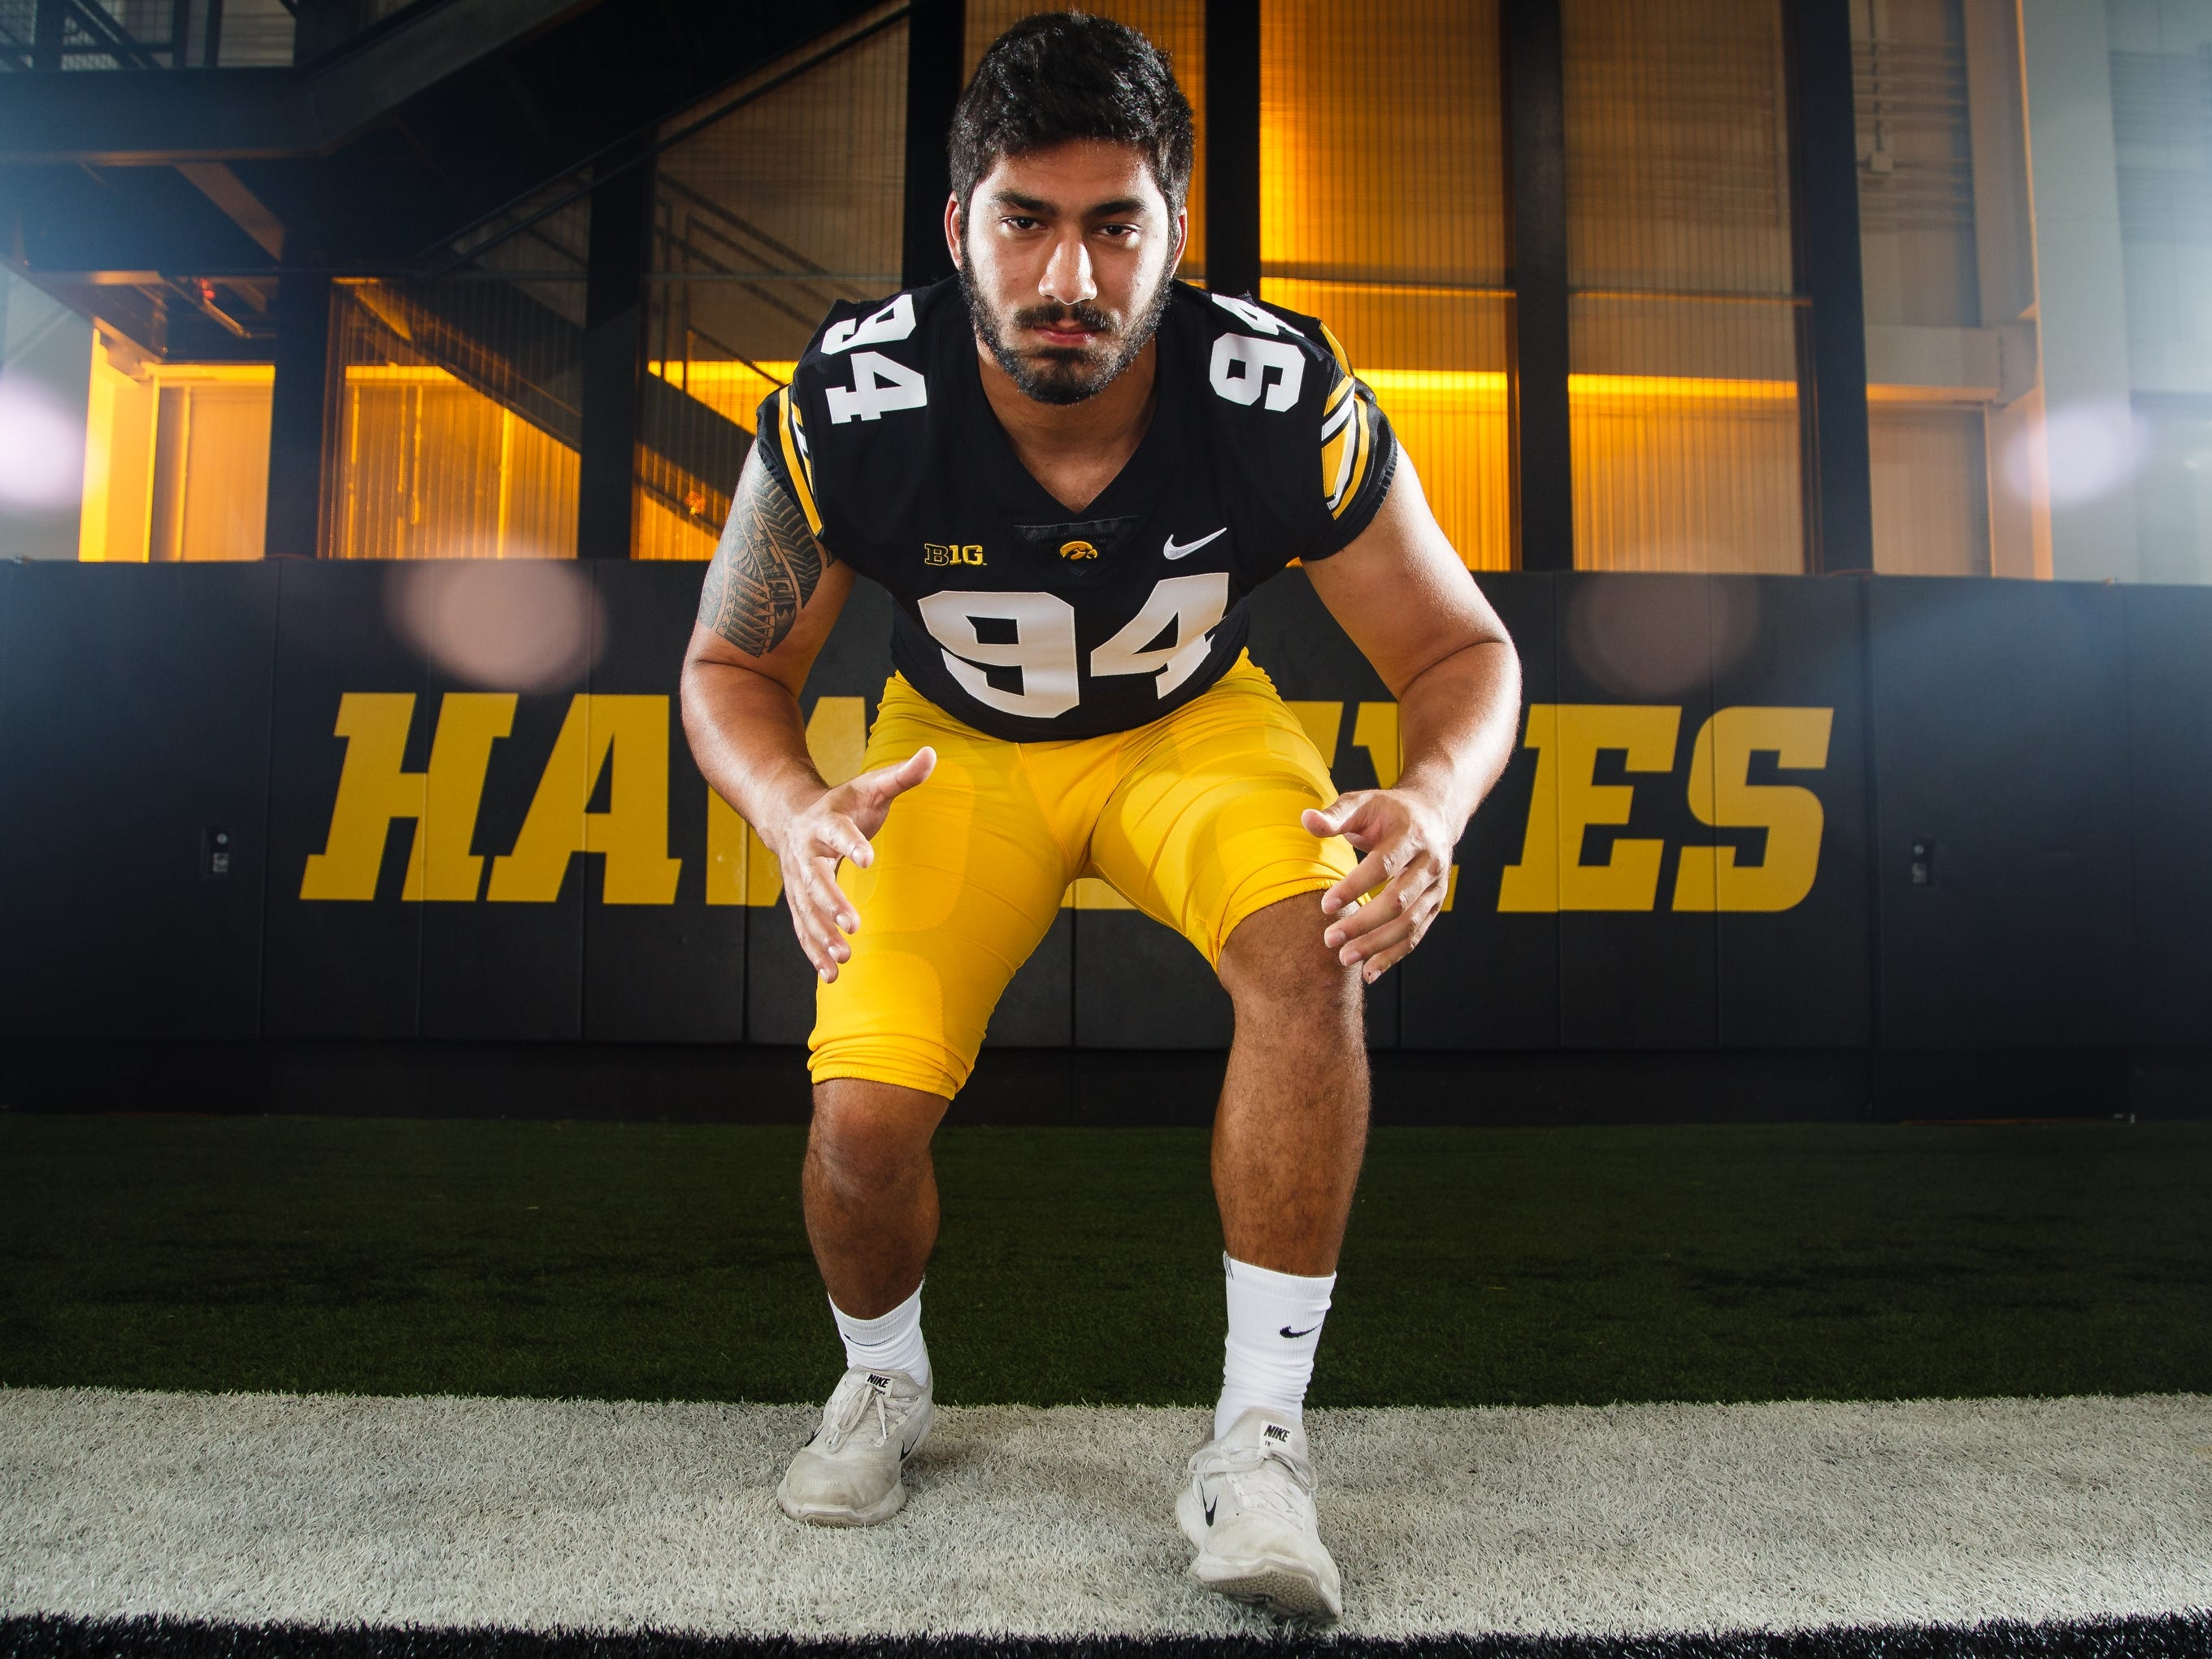 Iowa's A.J. Epenesa poses for a photo during the Iowa Football media day on Friday, Aug. 10, 2018 in Iowa City.